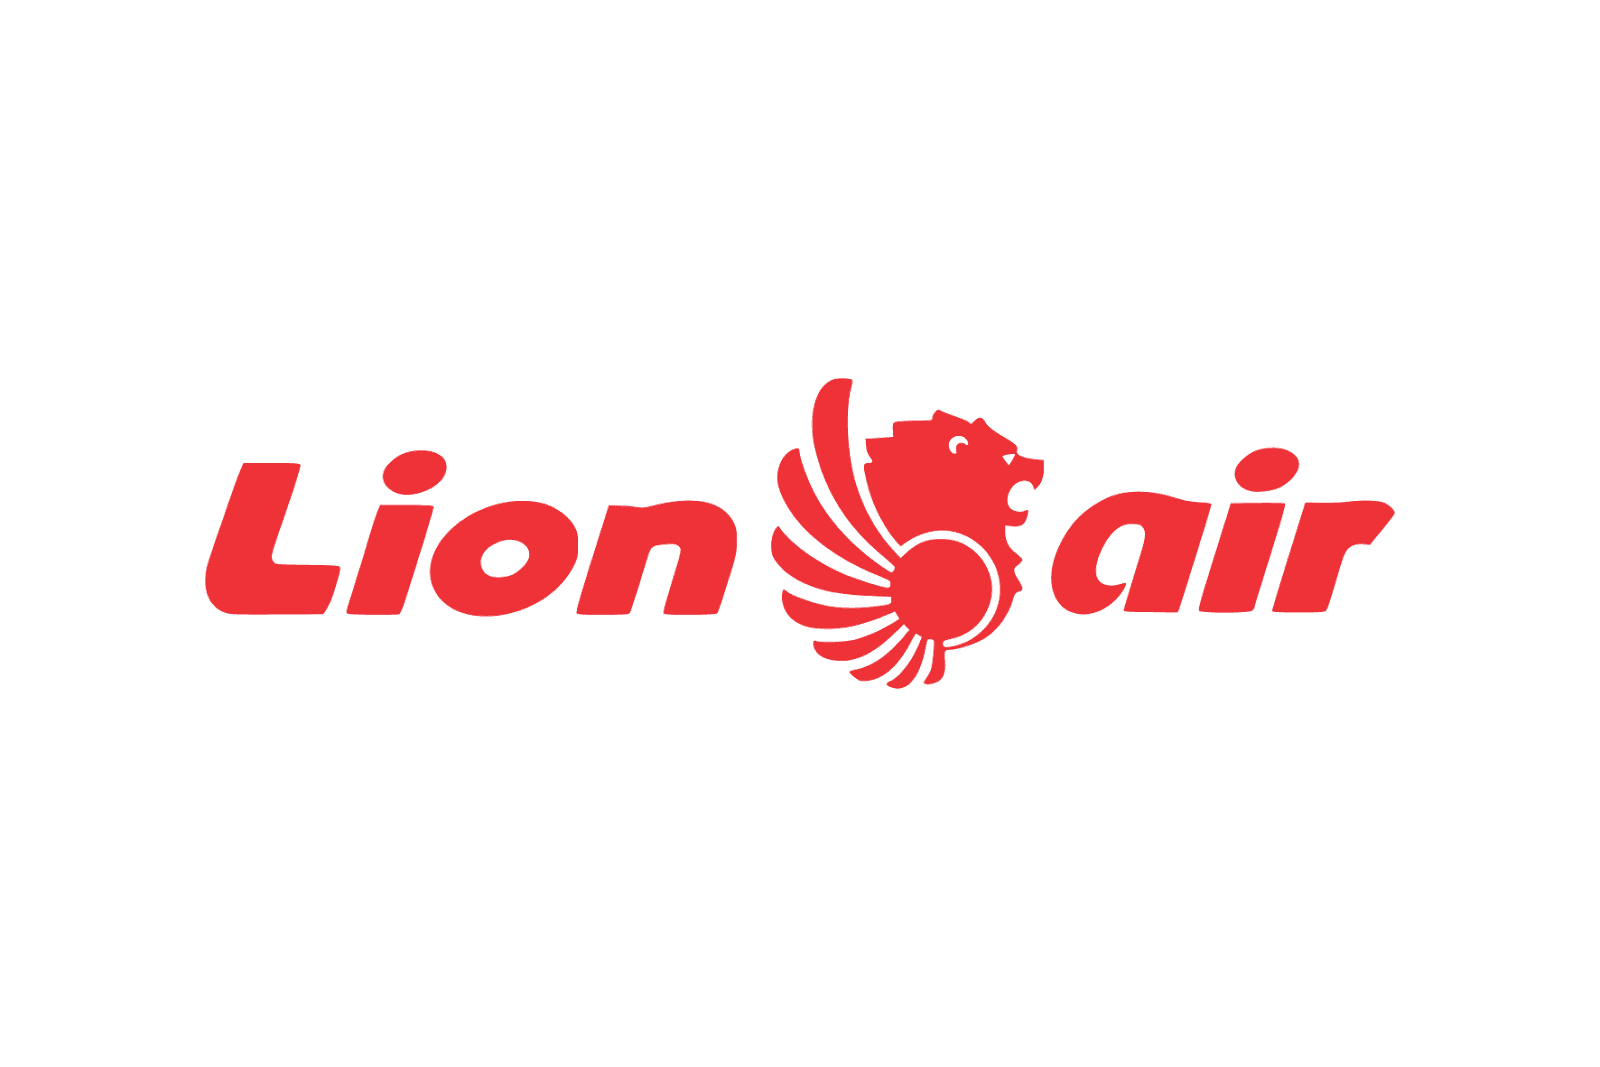 Lion Air Indonesia Kupon & Diskon 2020